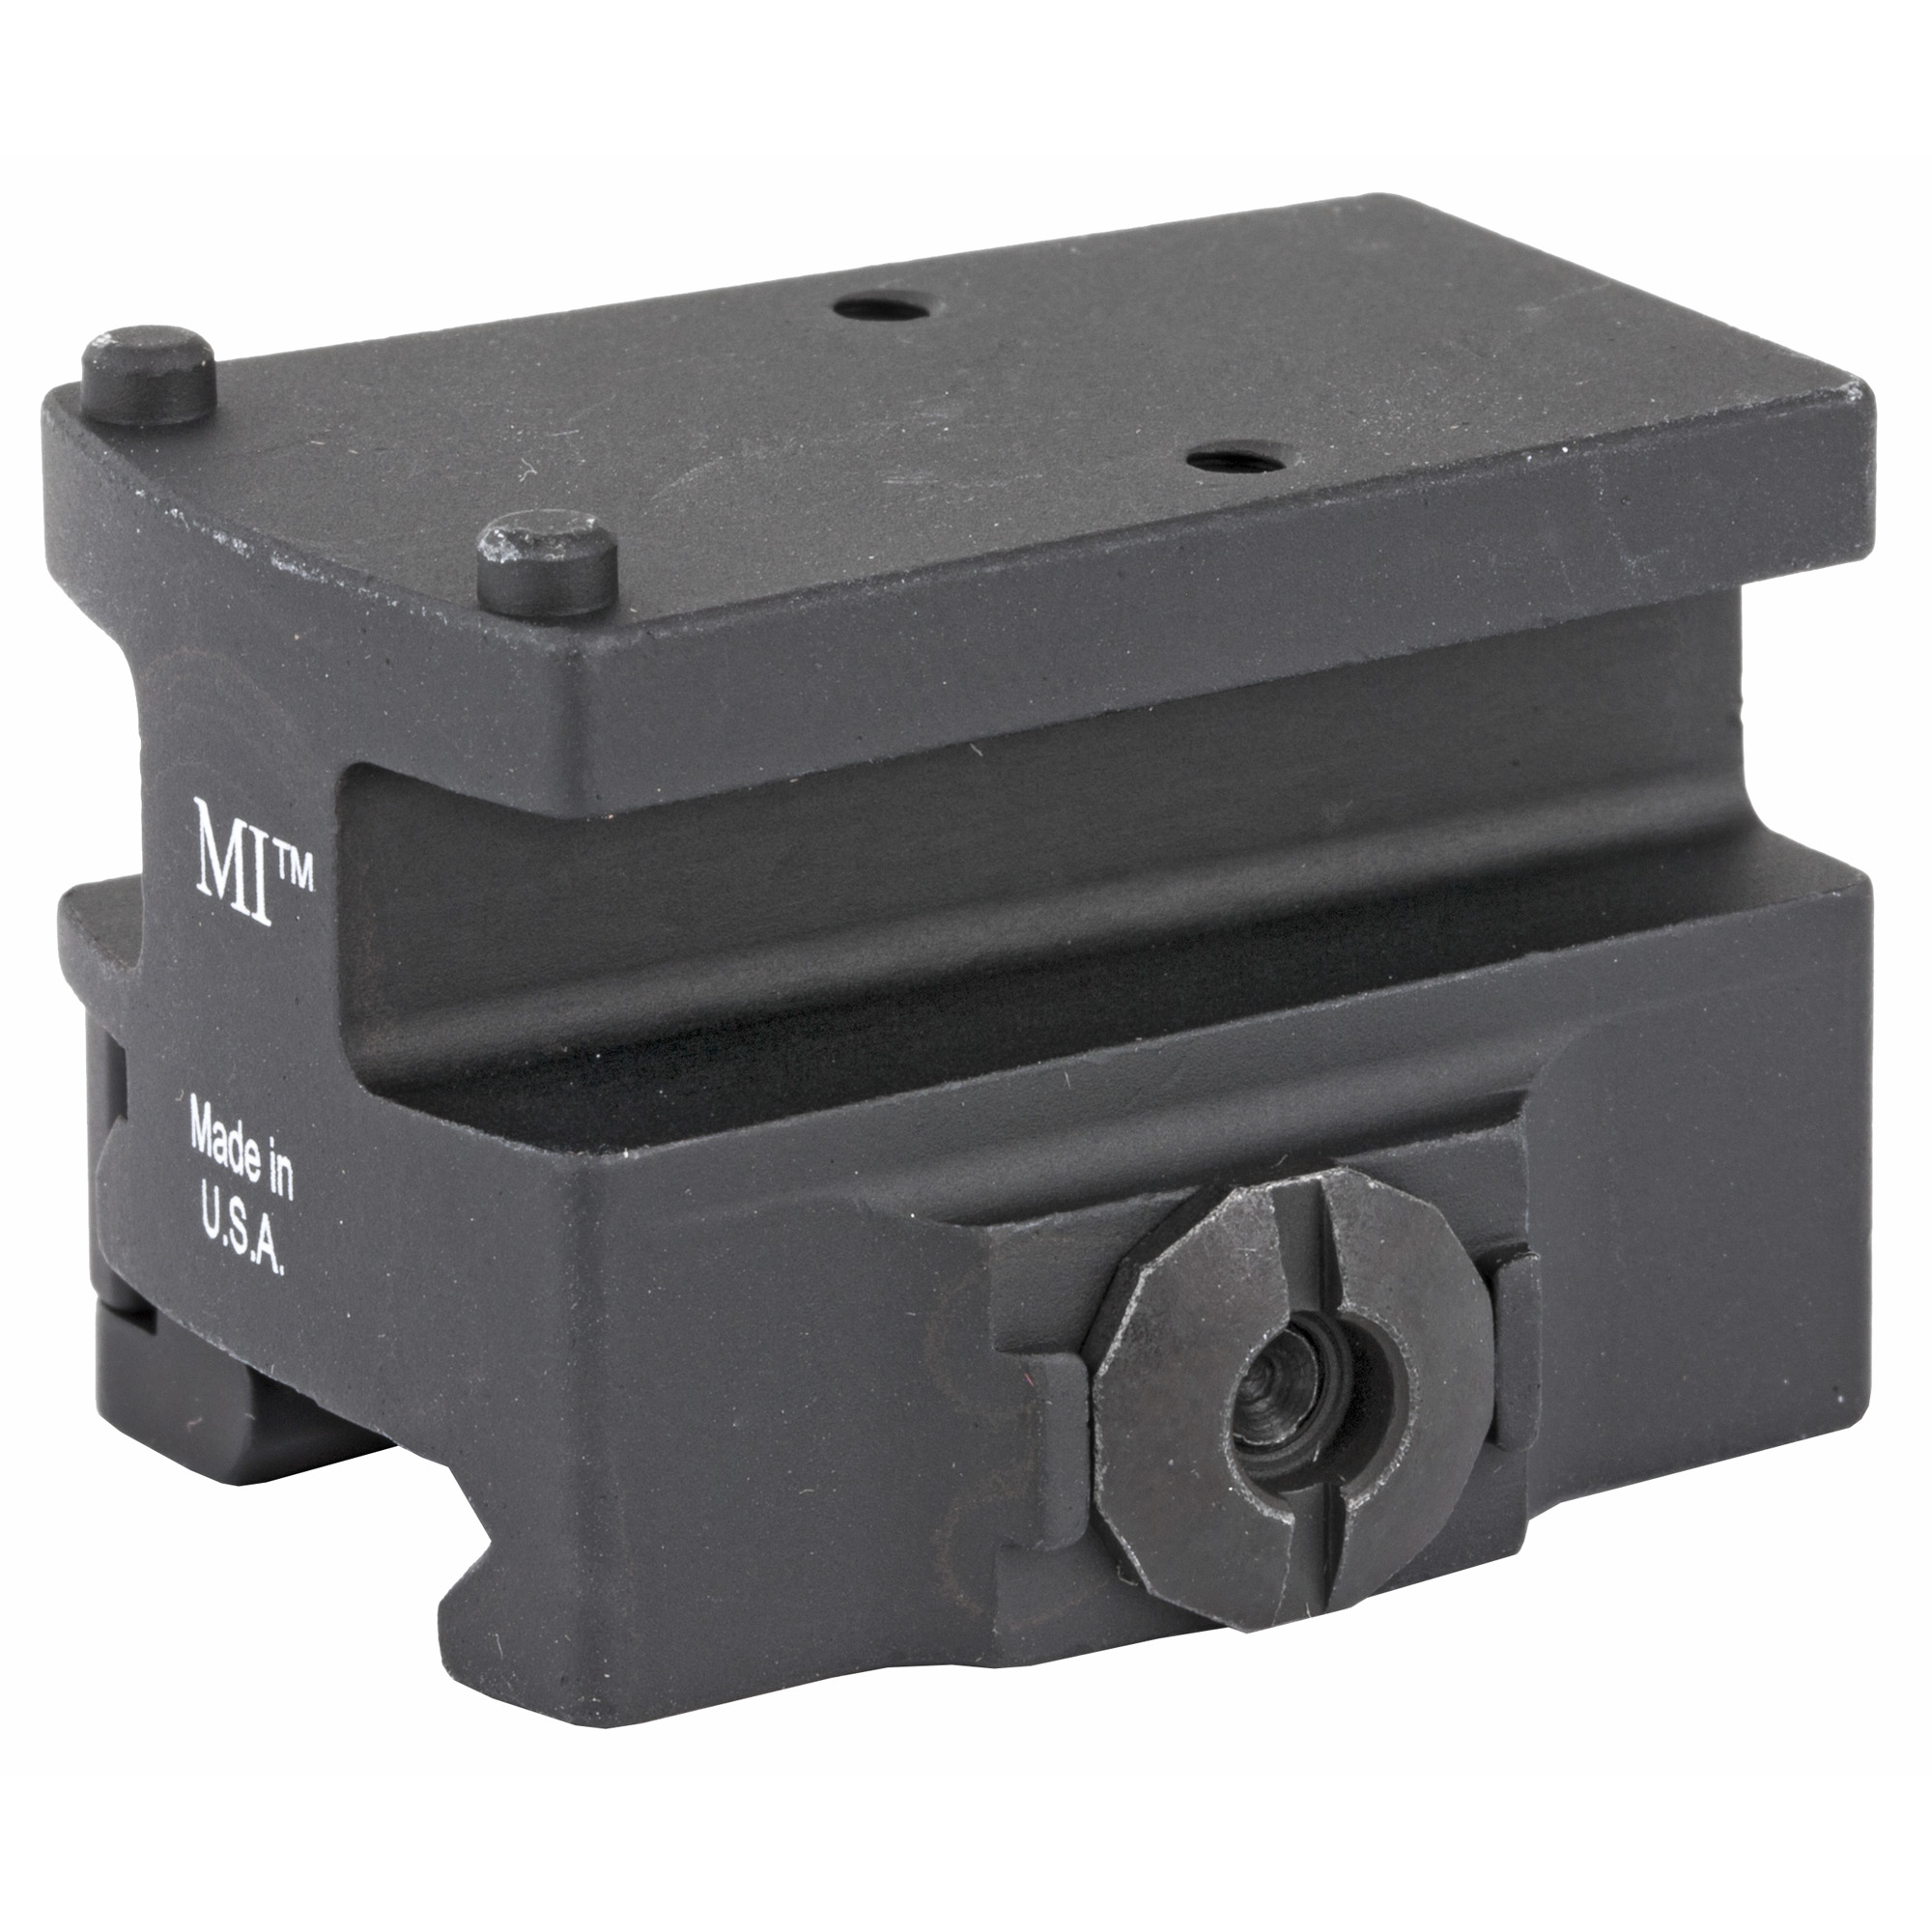 Lower 1/3 Trijicon RMR QD mount made by Midwest Industries.